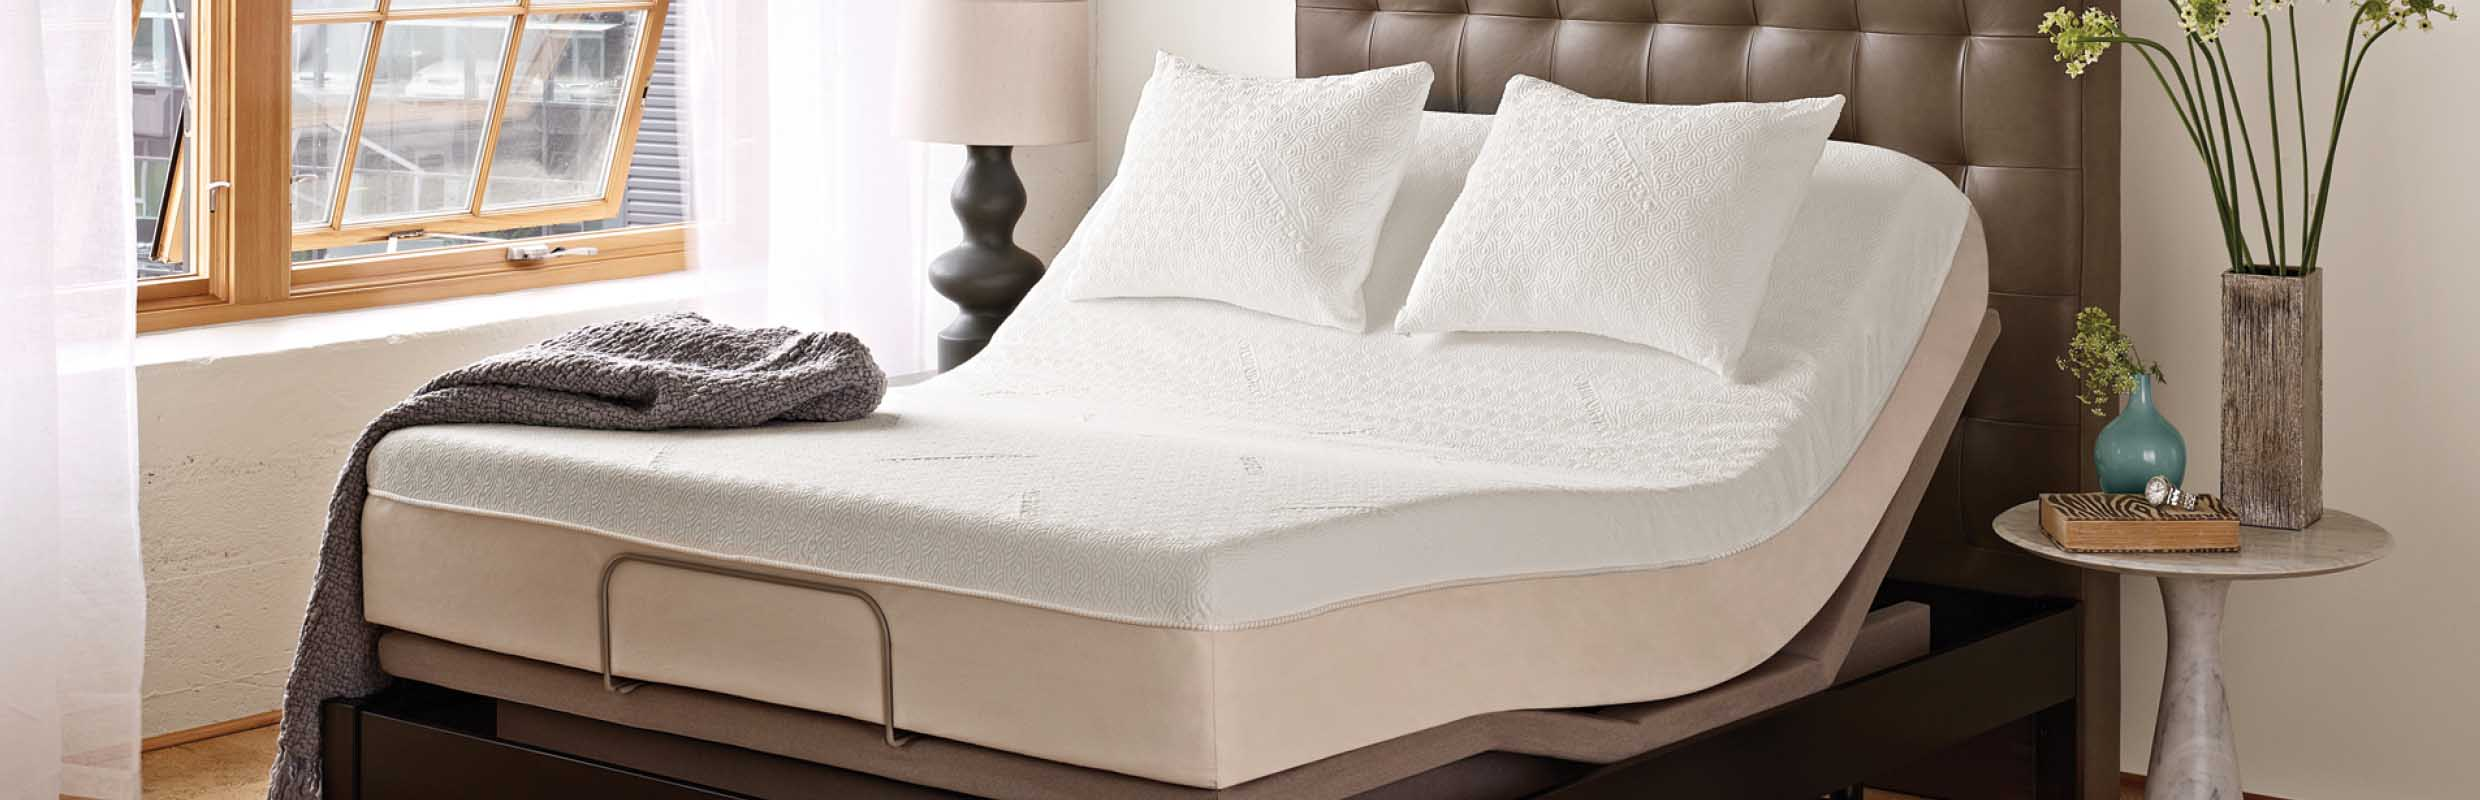 Tempur pedic Sleep Brands